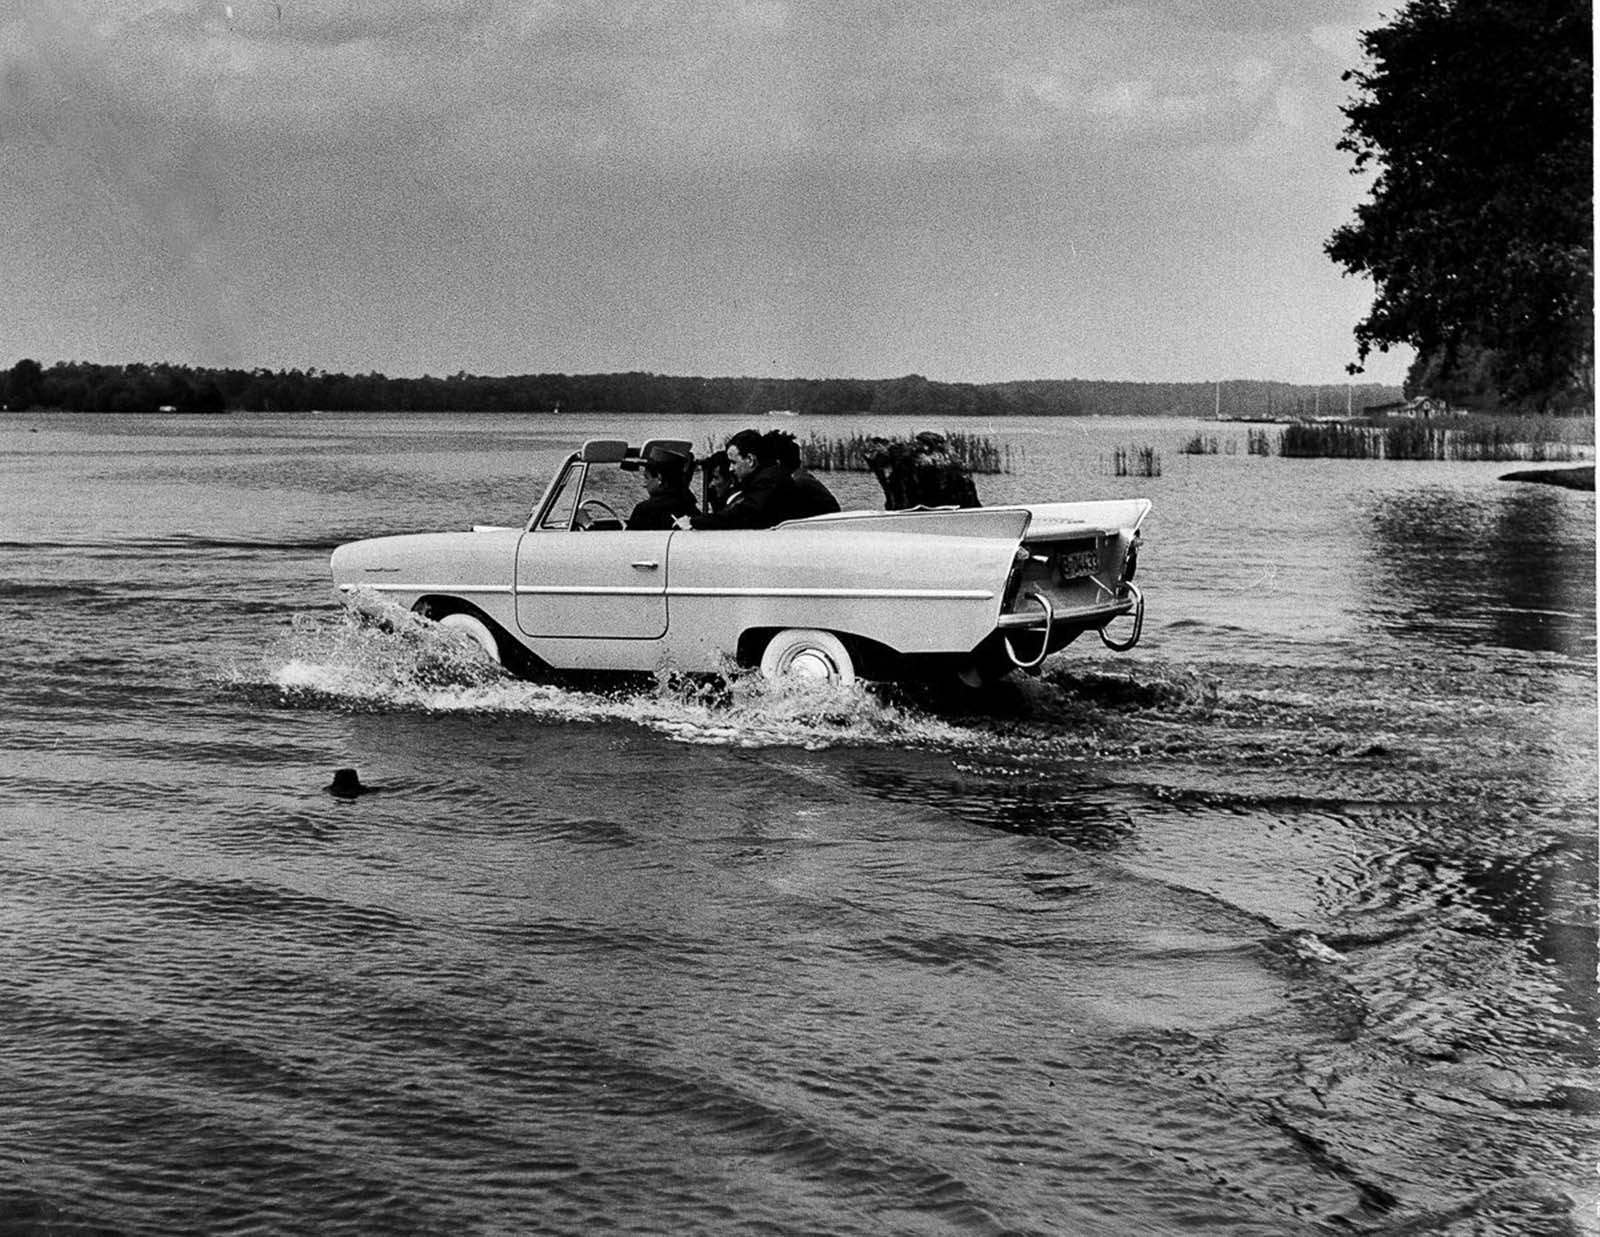 Designed by Hans Trippel, the amphibious vehicle was manufactured by the Quandt Group at Lübeck and at Berlin-Borsigwalde, with a total of 3,878 manufactured in a single generation.